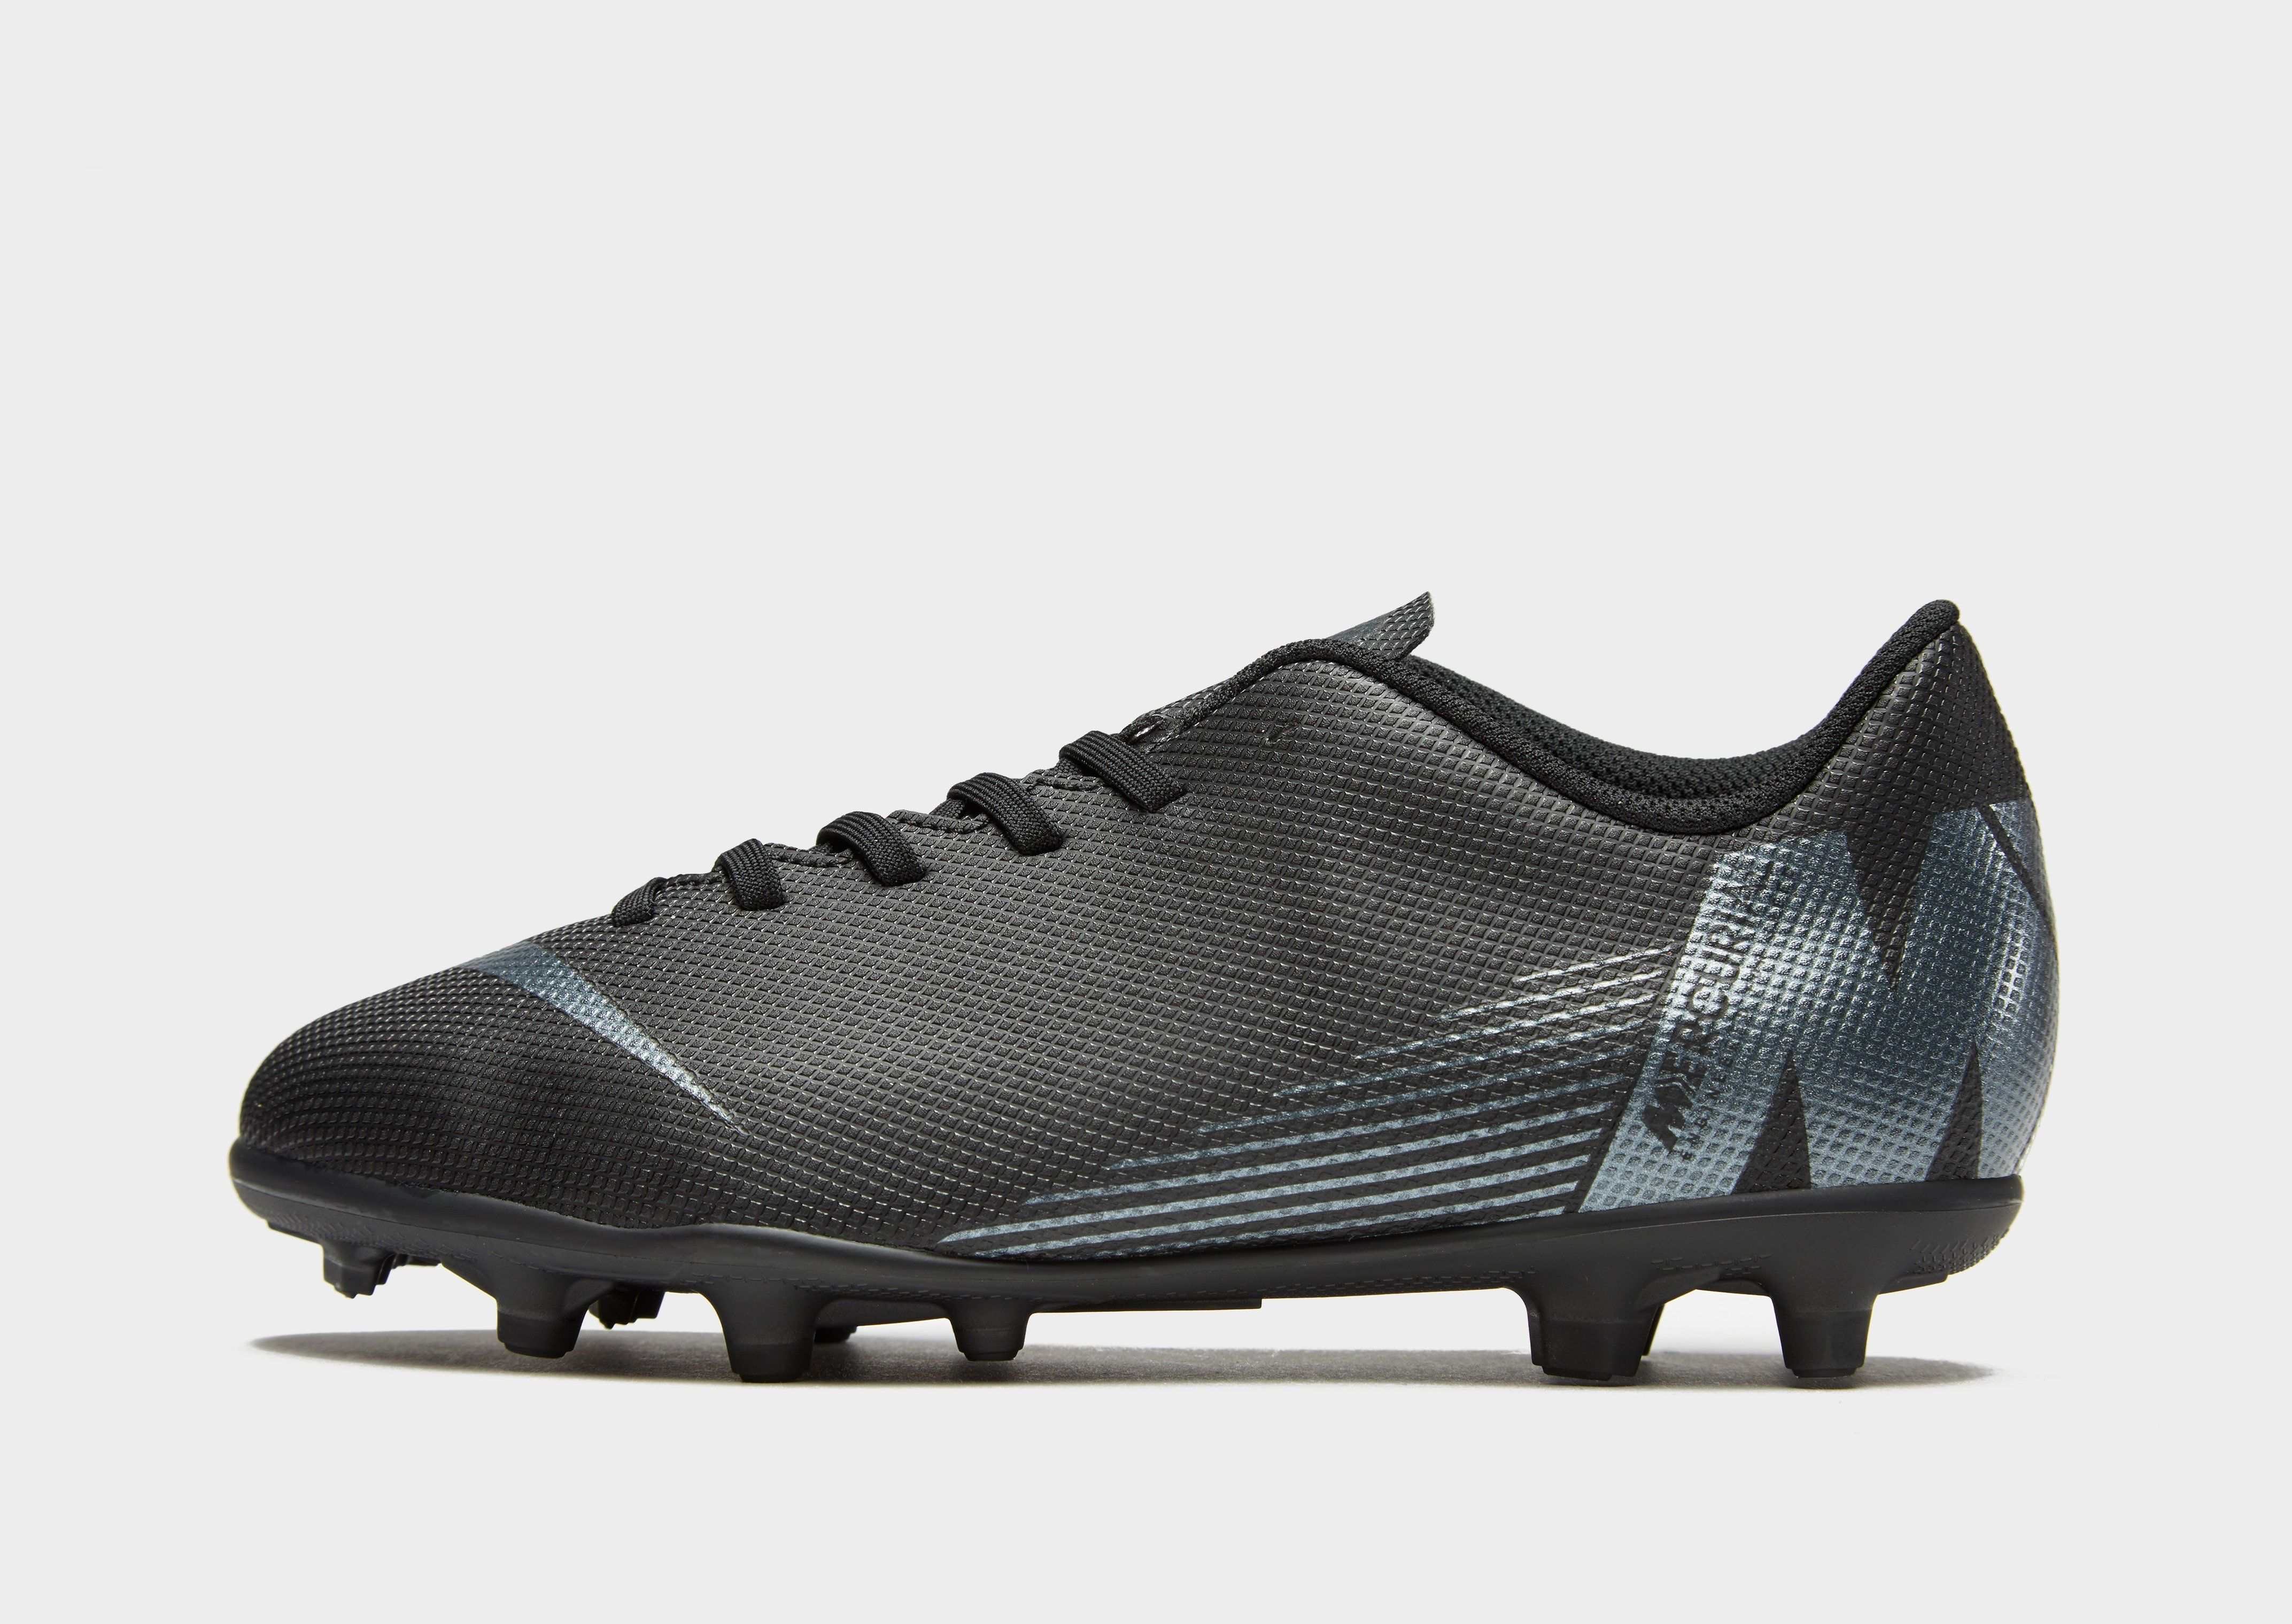 pretty nice 9c7bc 54d7a Nike Stealth Ops Mercurial Vapor MG Juniorit   JD Sports